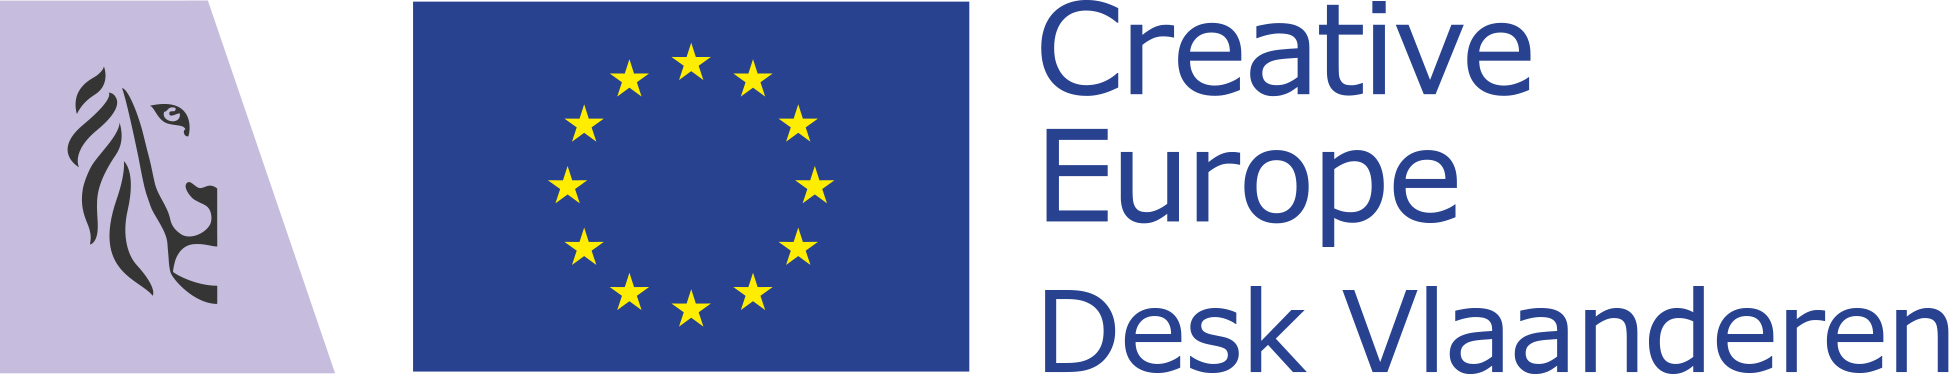 Logo Creative Europe Desk Vlaanderen